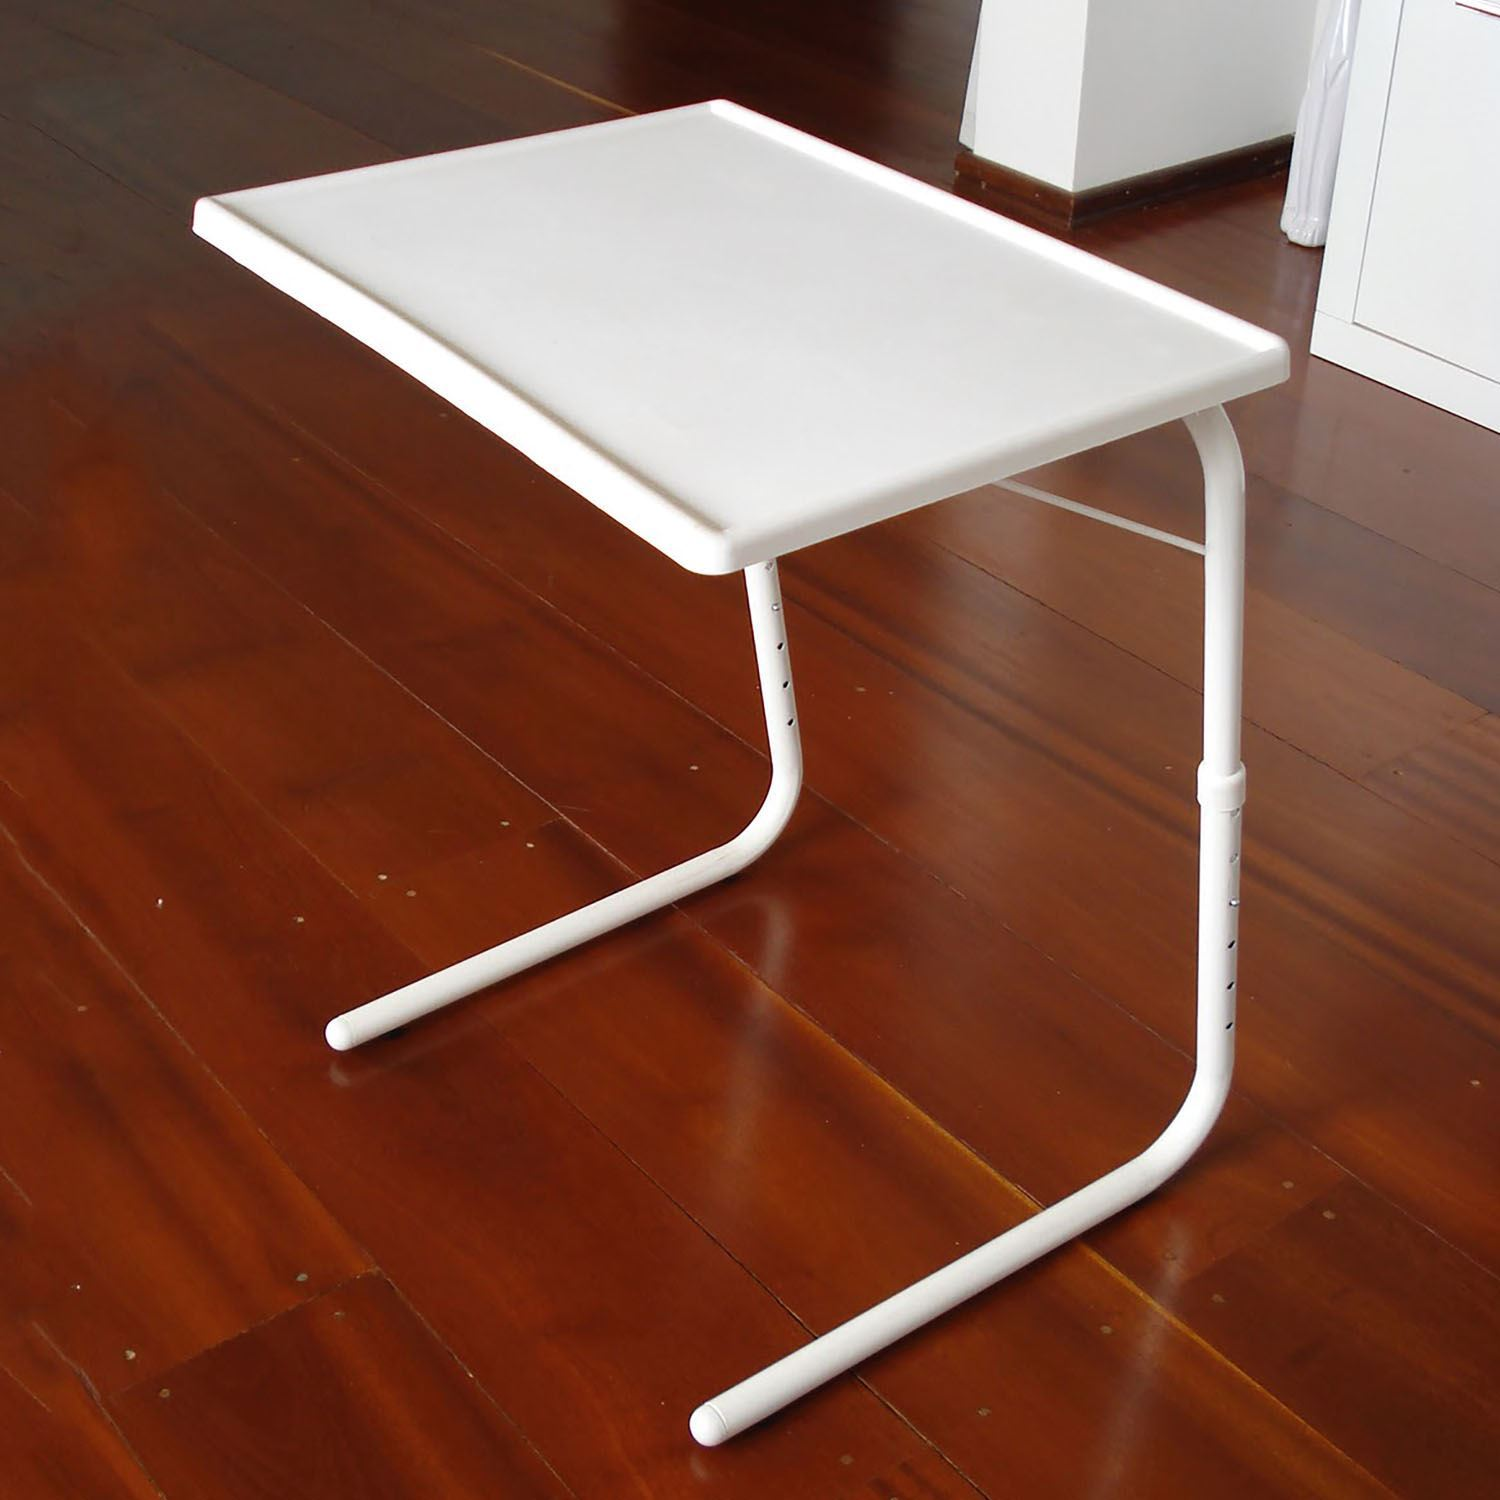 TABLE MATE TV DINNER LAPTOP TRAY ADJUSTABLE FOLDING TABLE SOFA BED Gift